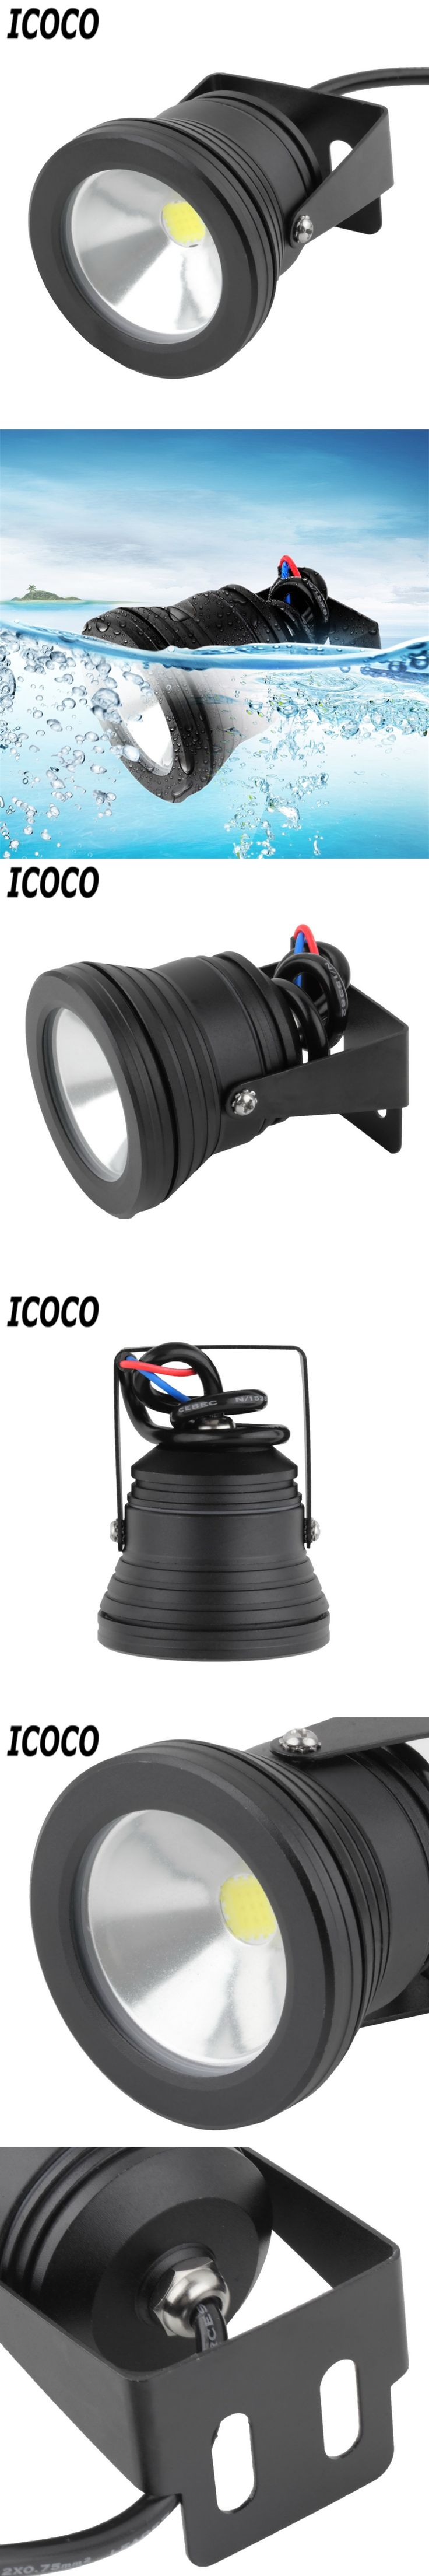 ICOCO Hight Quality 10W Waterproof LED Flood Light Underwater Fountain Light Wash Pond Fish Tank floodlight 12V Outdoor Lighting